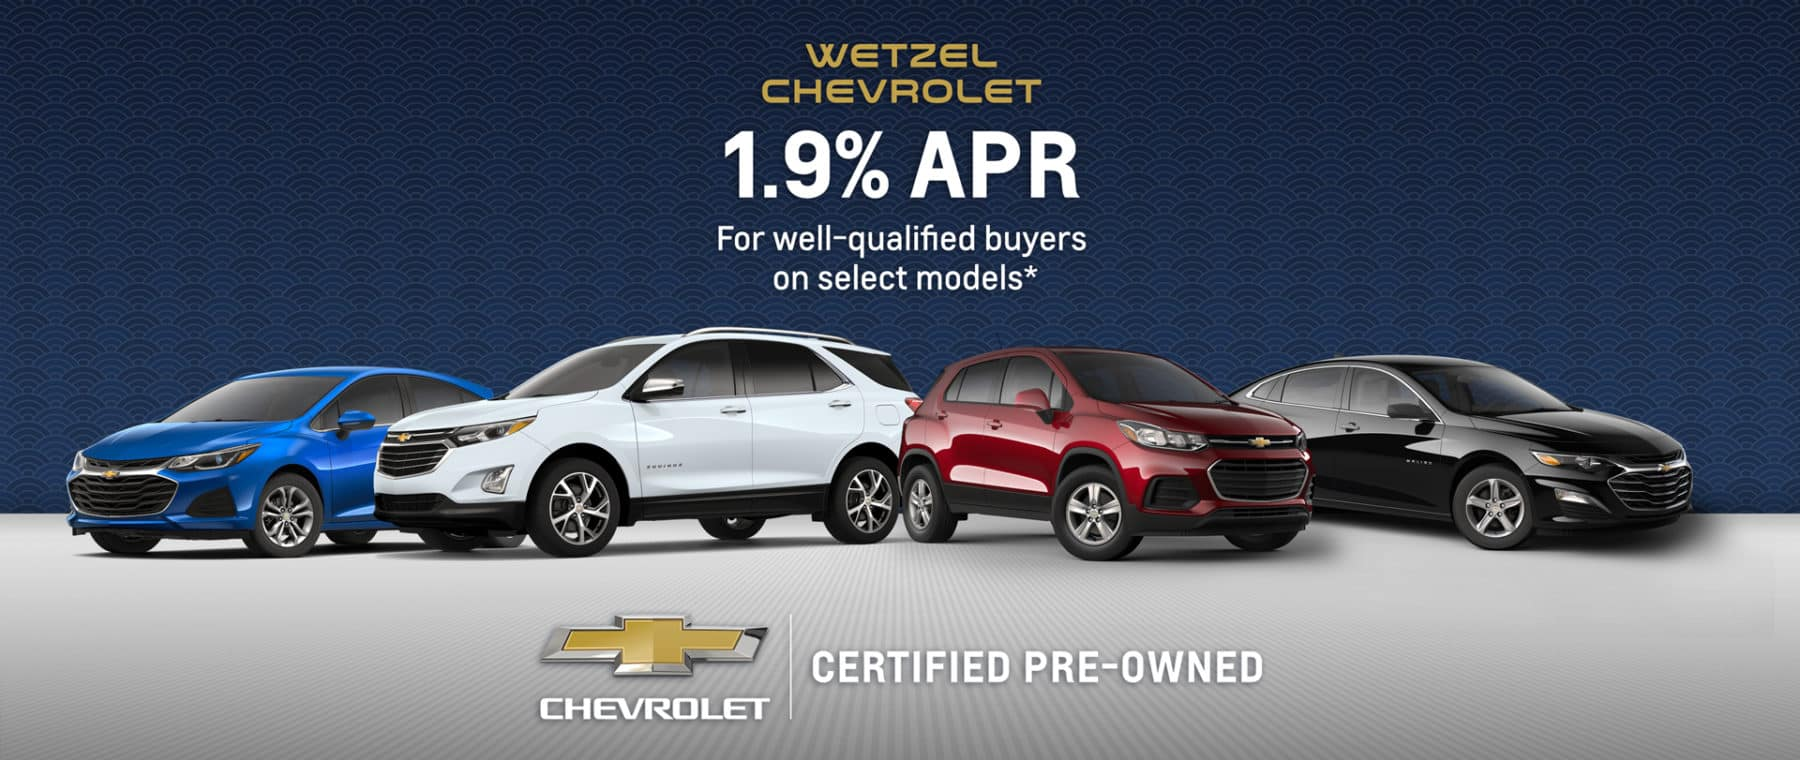 Wetzel Chevrolet Certified Pre-Owned Vehicles